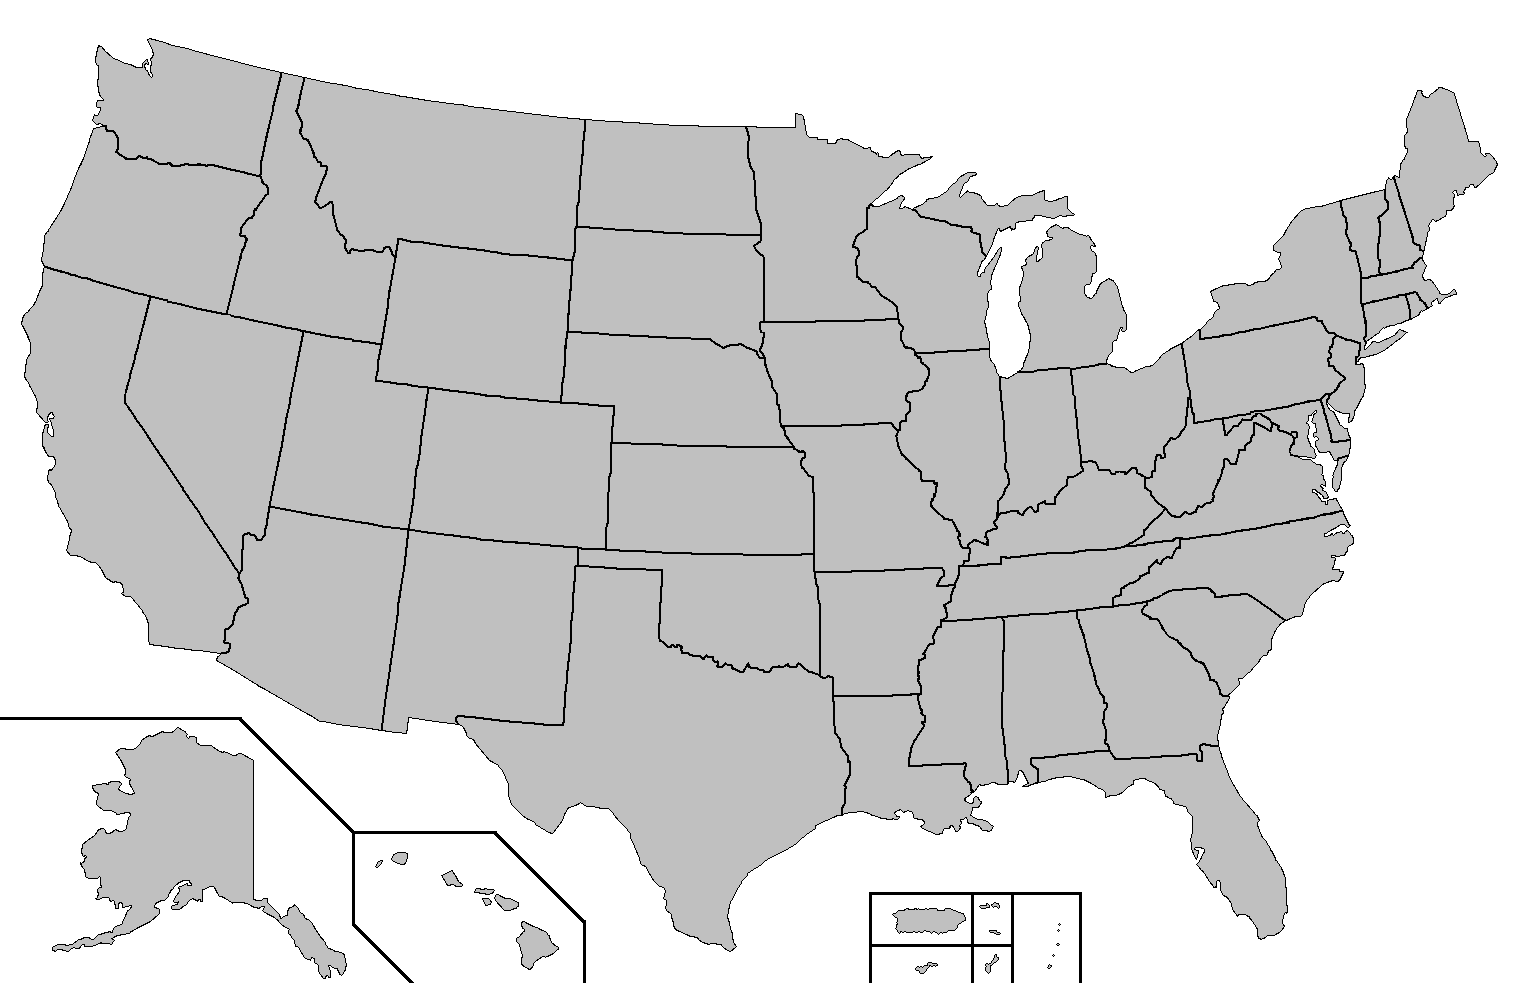 FileBlank Map Of The United StatesPNG Wikimedia Commons - Blank usa map